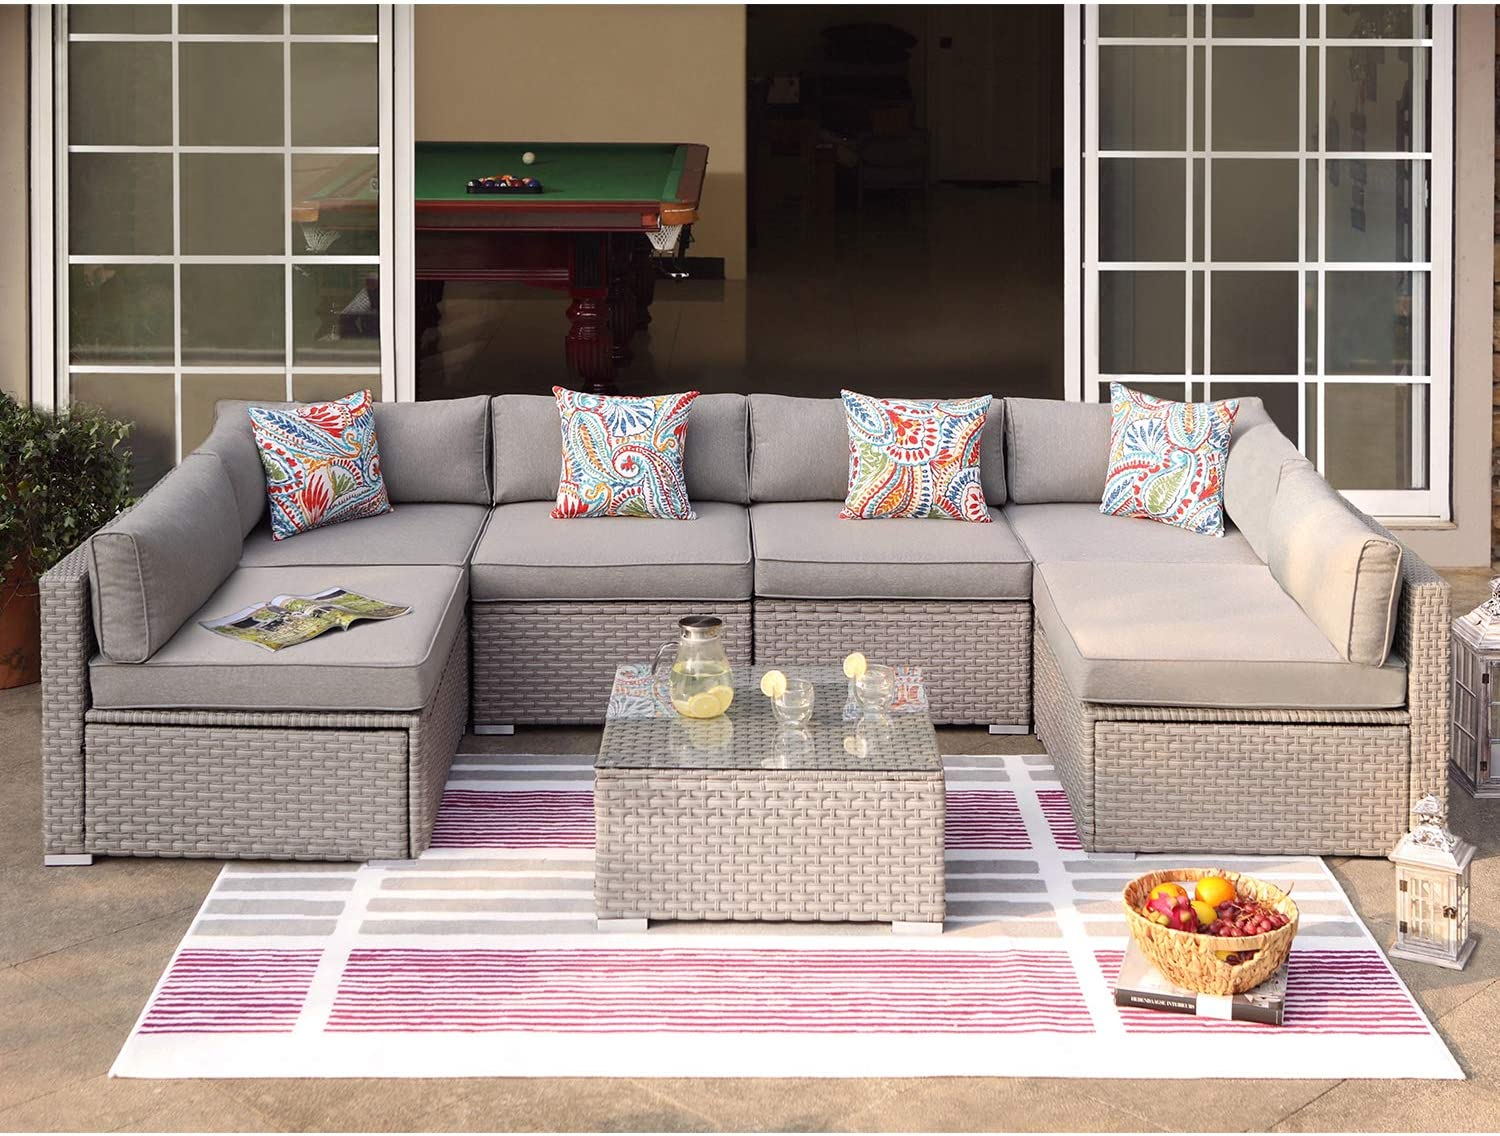 COSIEST 7-Piece Outdoor Furniture Set Warm Gray Wicker Sectional Sofa w Thick Cushions, Glass Coffee Table, 6 Floral Fantasy Pillows for Garden, Pool, Backyard